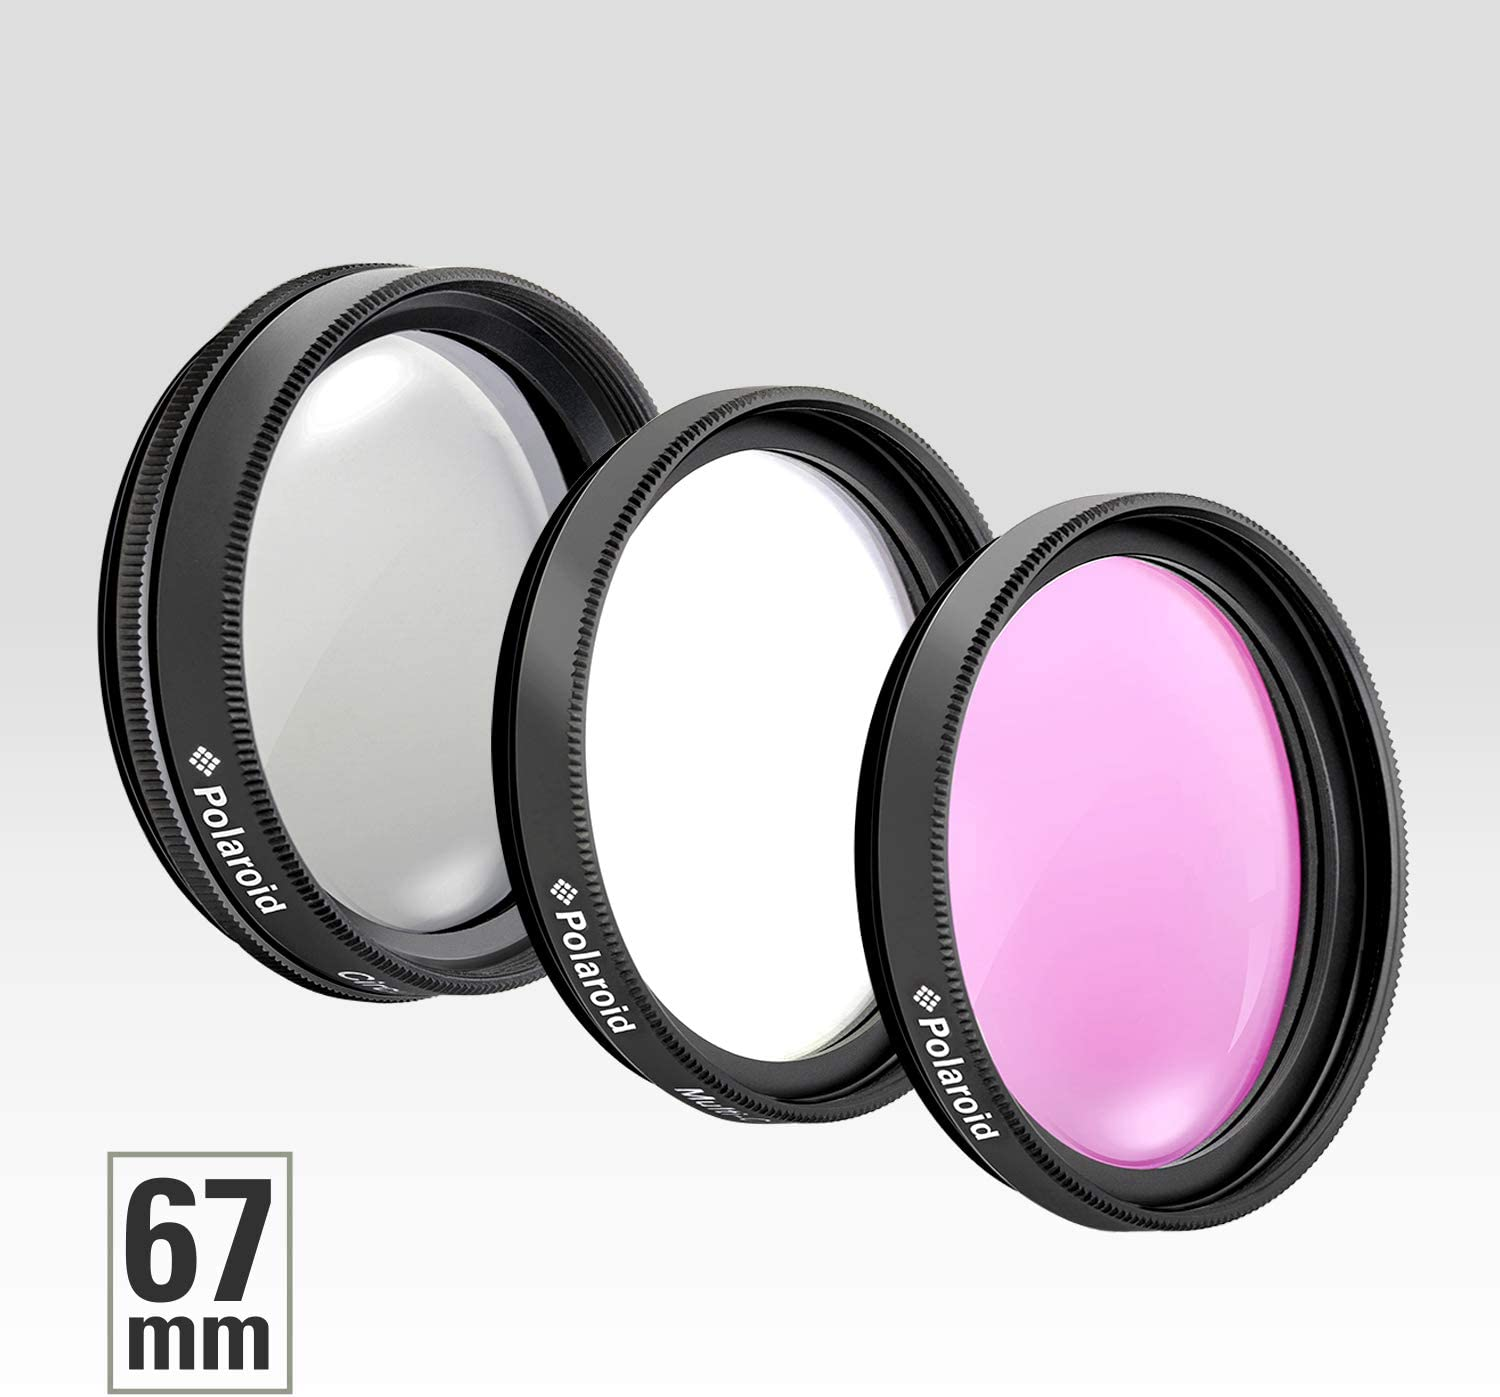 UV,CPL,FLD Compatible w// All Popular Camera Lens Models includes Nylon Carry Case Polaroid Optics 82mm 3-Piece Filter Kit Set